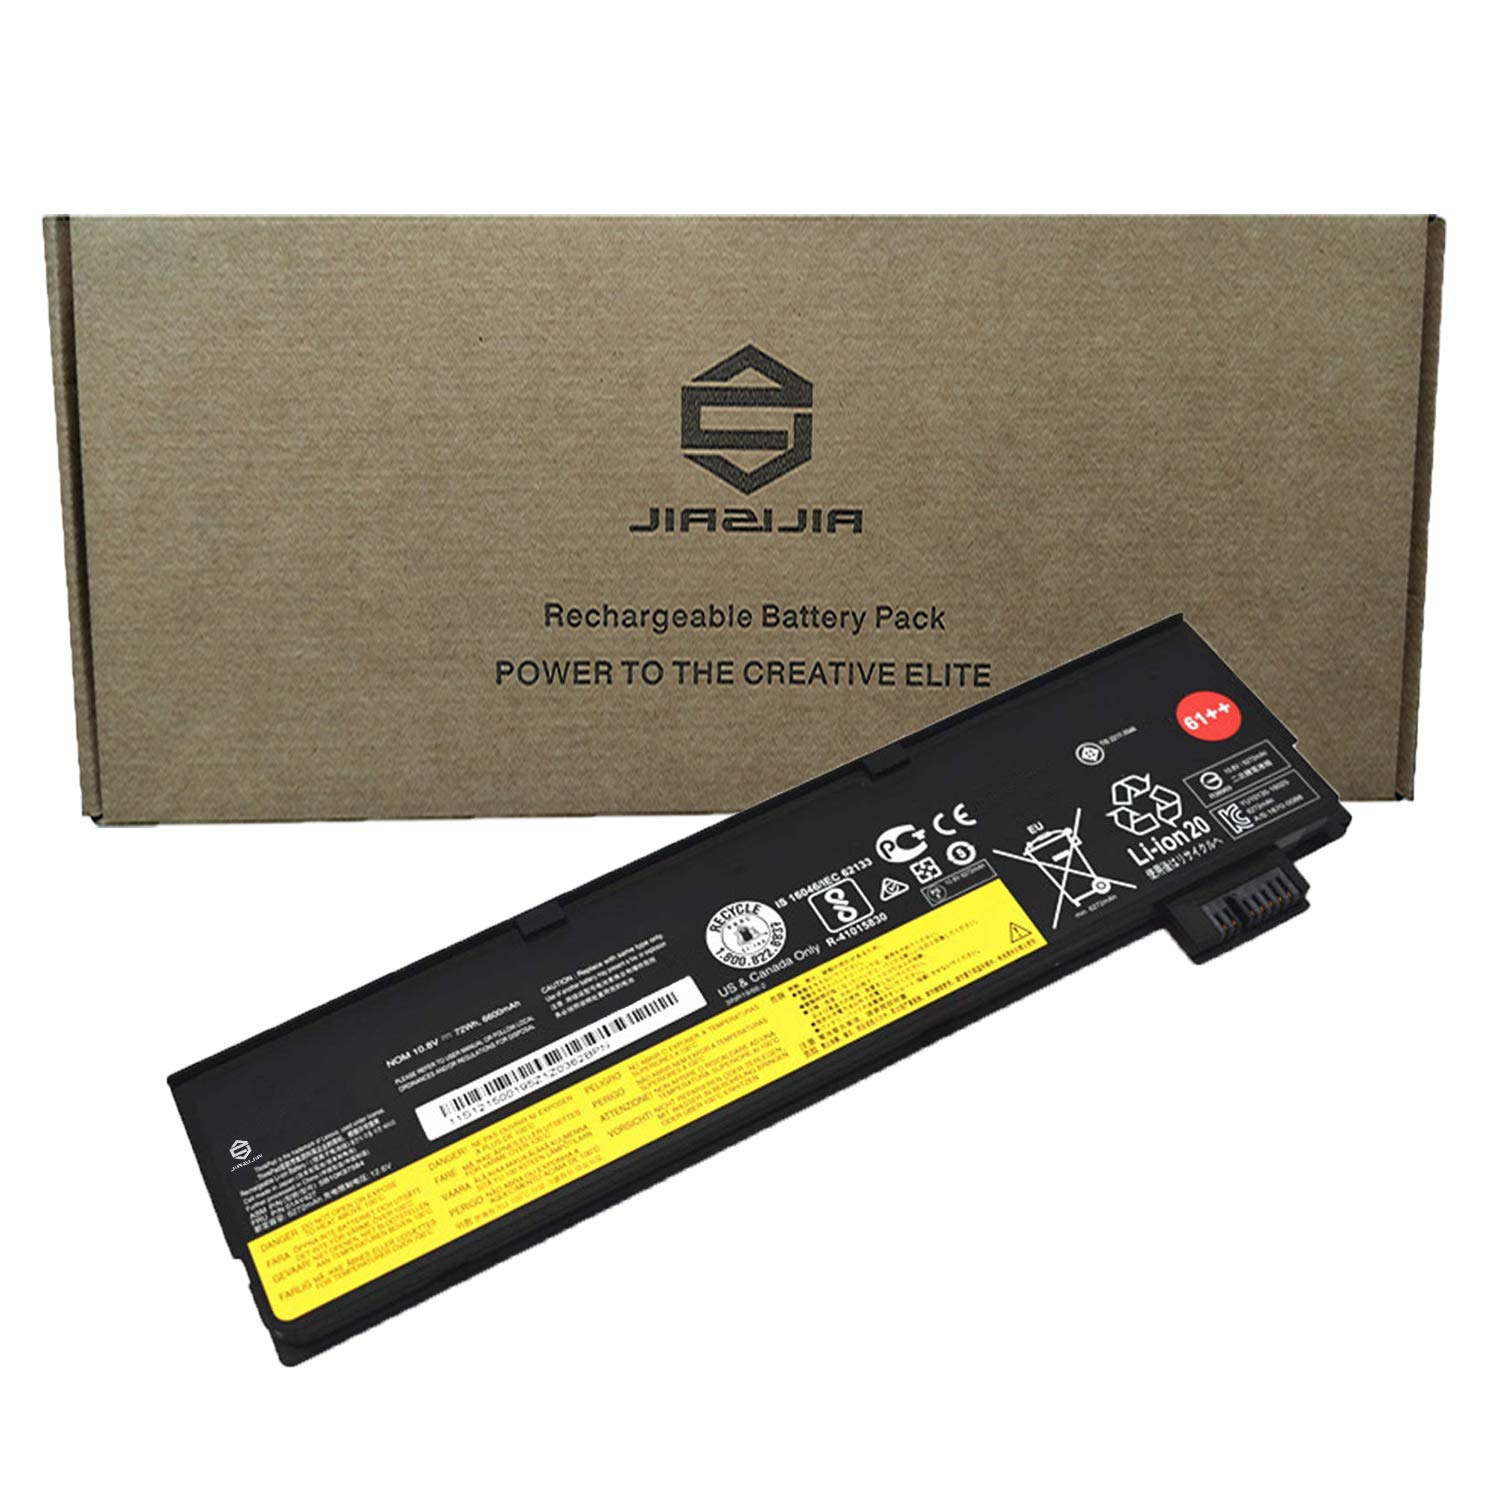 JIAZIJIA Compatible Laptop Battery with Lenovo 01AV427 [10.8V 72Wh 6600mAh 6-Cell] ThinkPad P51S P52S T470 T480 T570 T580 TP25 A475 A485 Series 61++ 01AV428 01AV492 4X50M08812 SB10K97584 SB10K97585 by JIAZIJIA (Image #1)